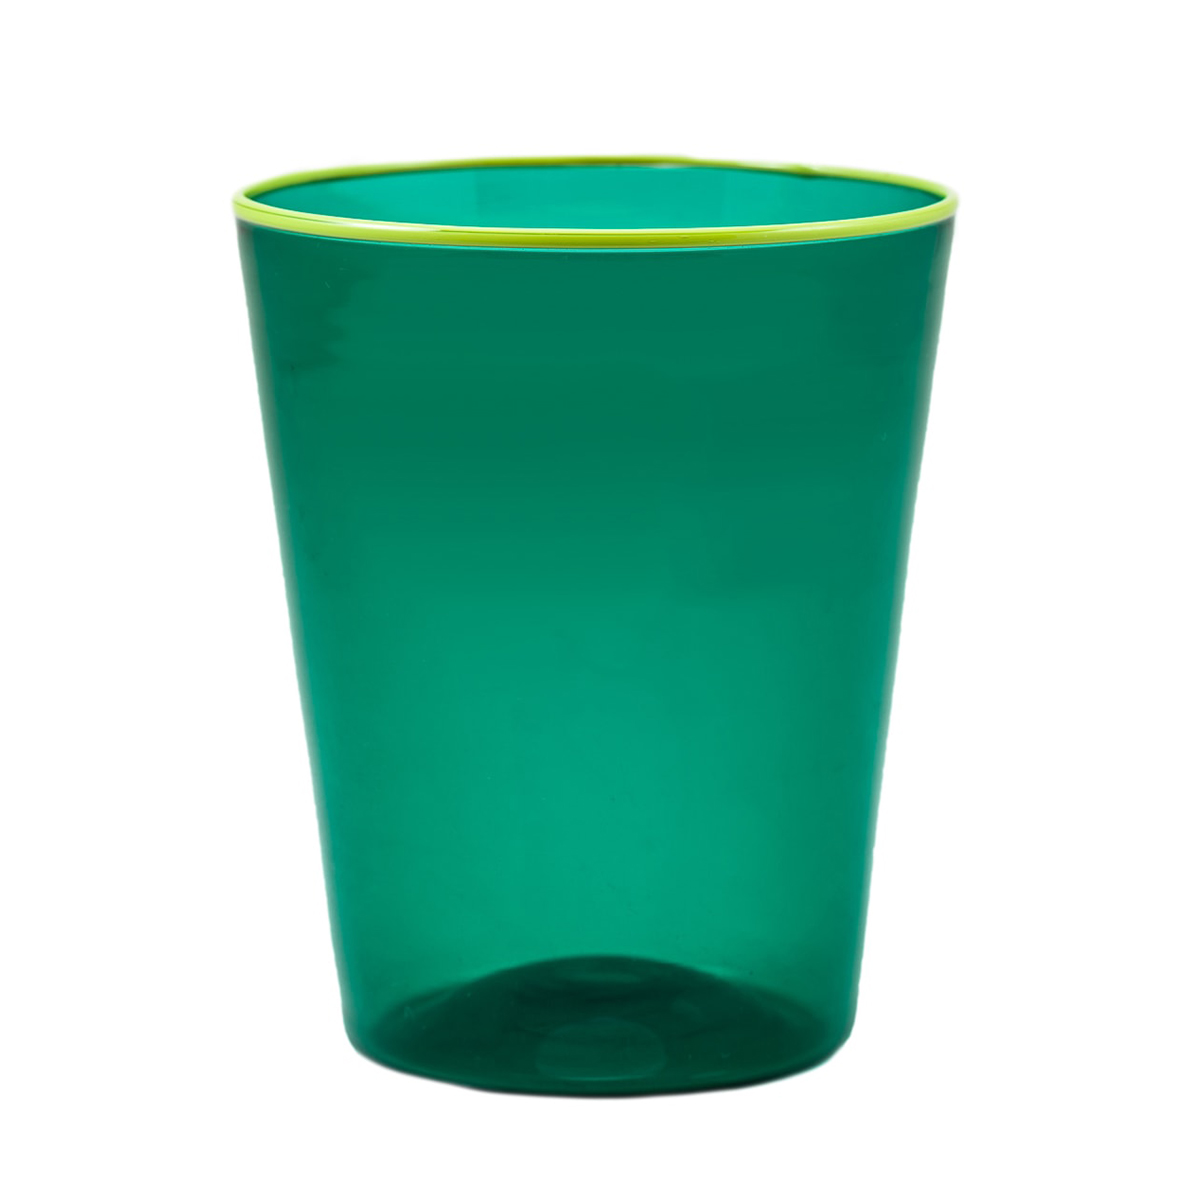 vaso-glass-giberto-colorful-spring-menta-mint-season-design-venice-luxury-min